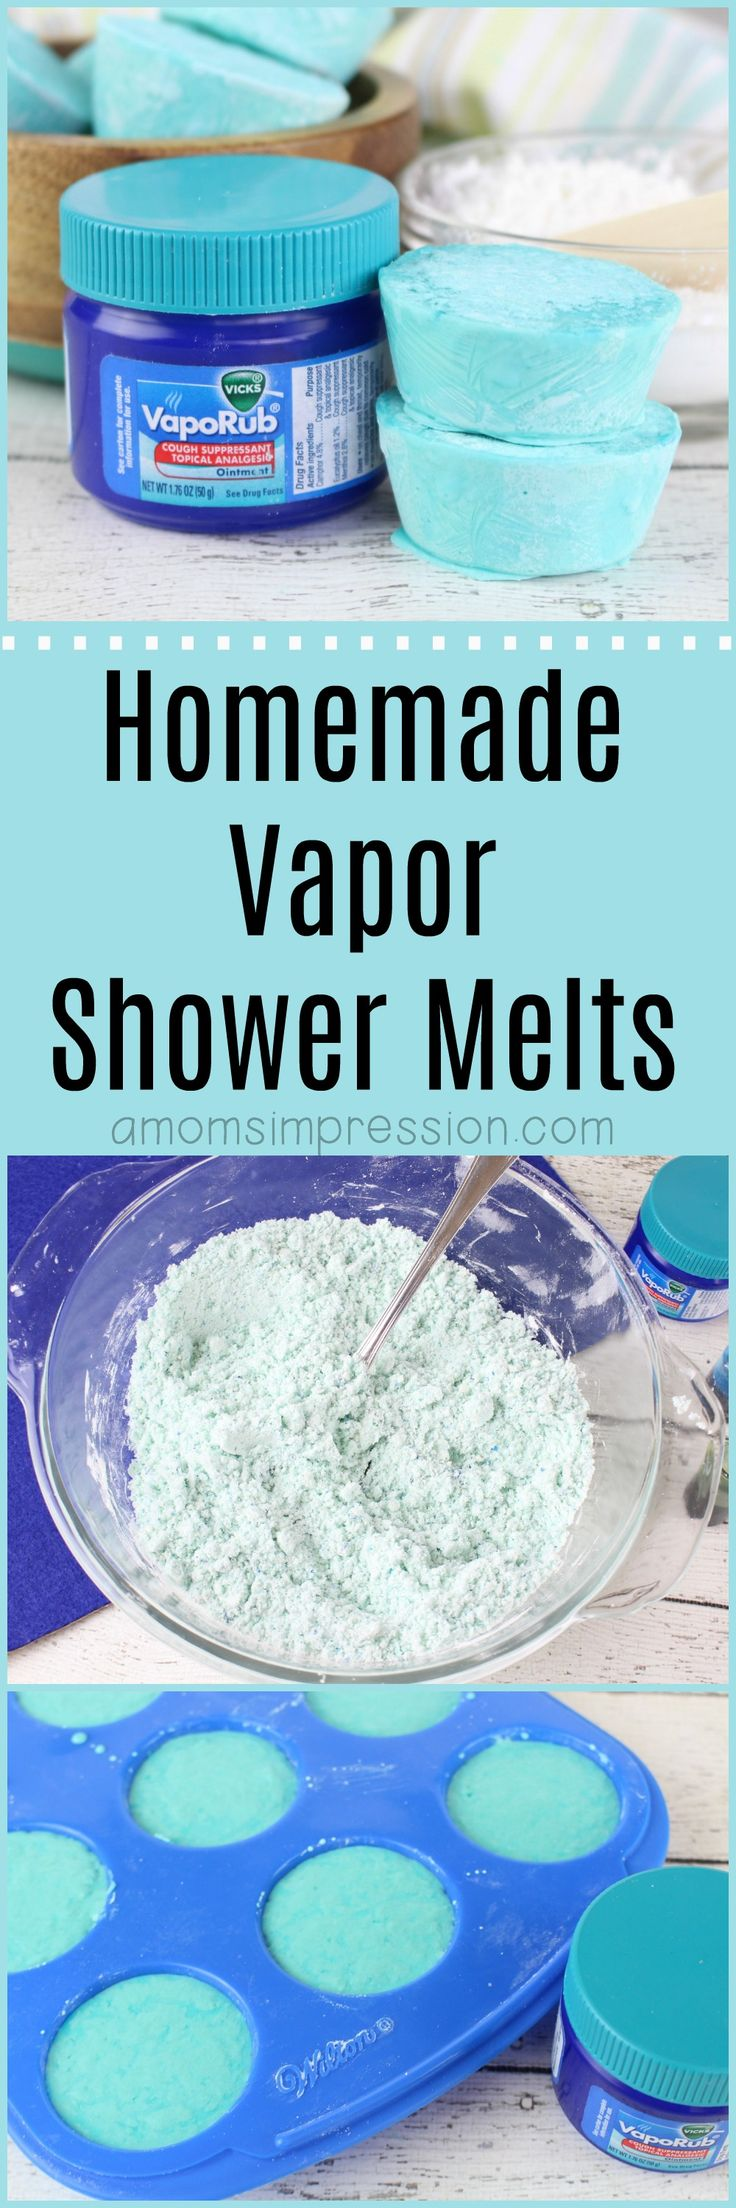 Love the discontinued Vicks shower melts? Make your own with this DIY vapor shower melts recipe. This recipe is without citric acid and uses vapor rub giving your shower the eucalyptus smell that is perfect for those of us who suffer from allergies or sinus pressure. #showermelts via @kjhodson